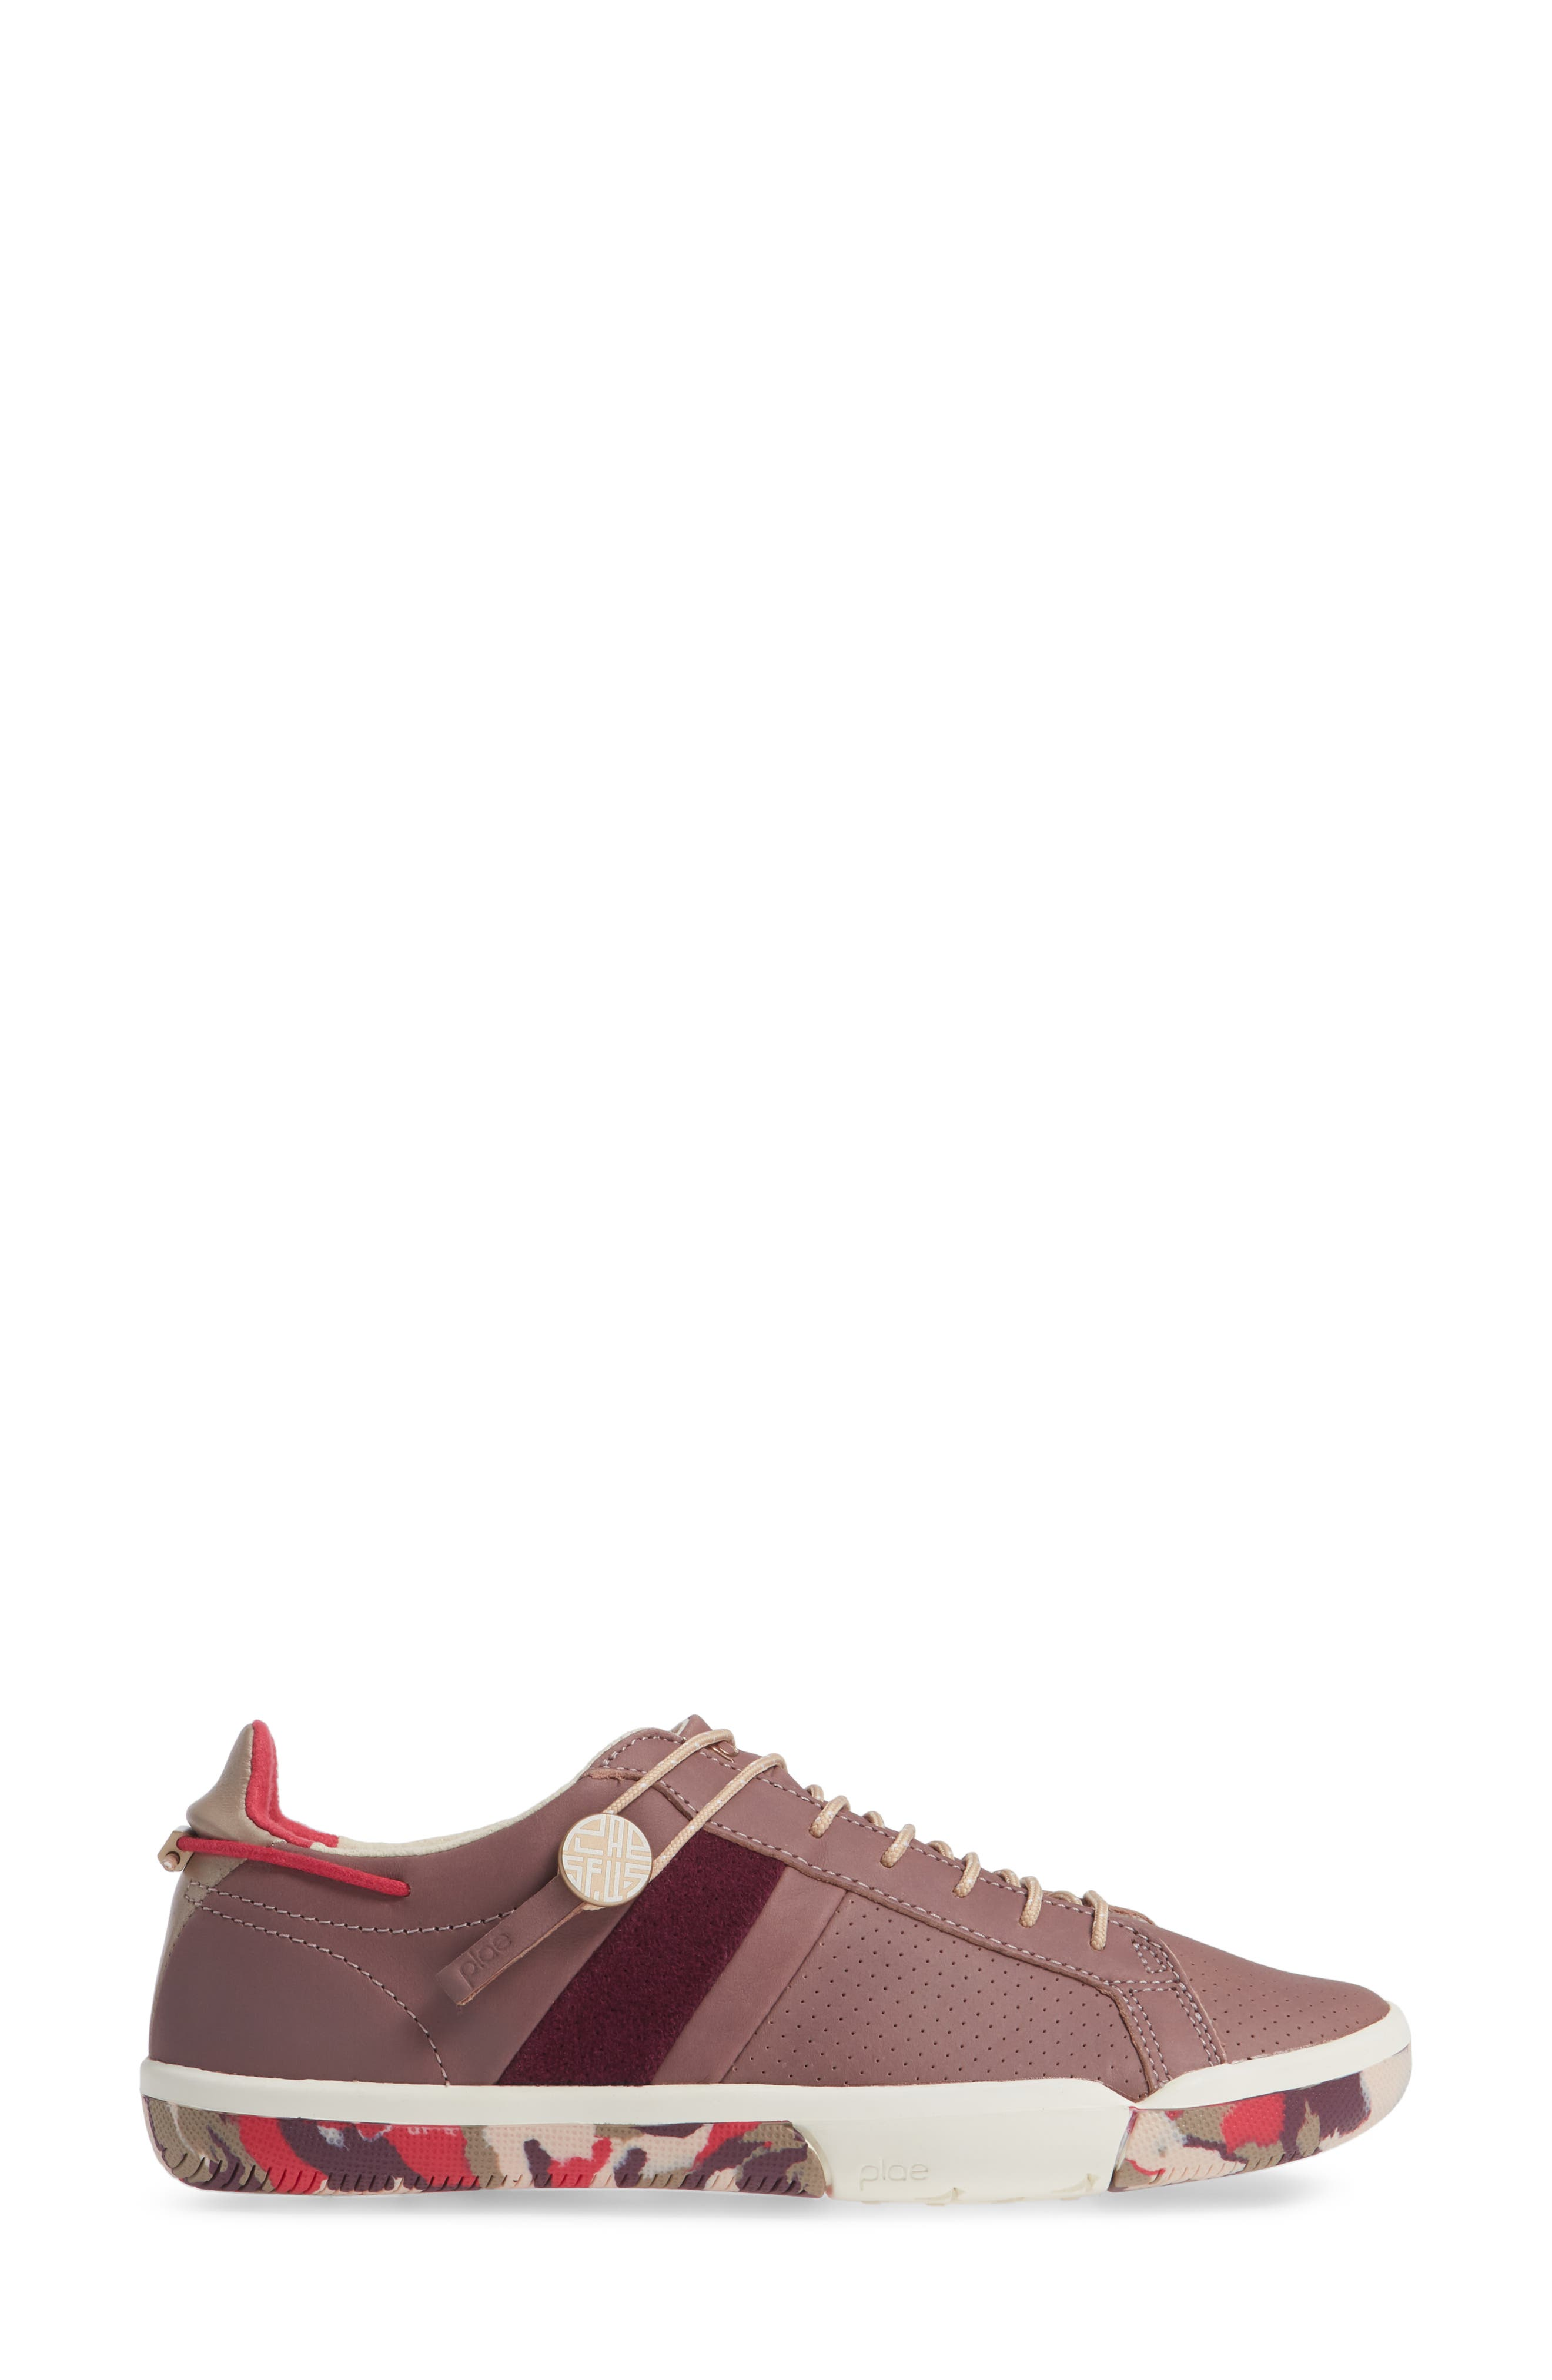 Mulberry Sneaker,                             Alternate thumbnail 3, color,                             SILTSTONE LEATHER